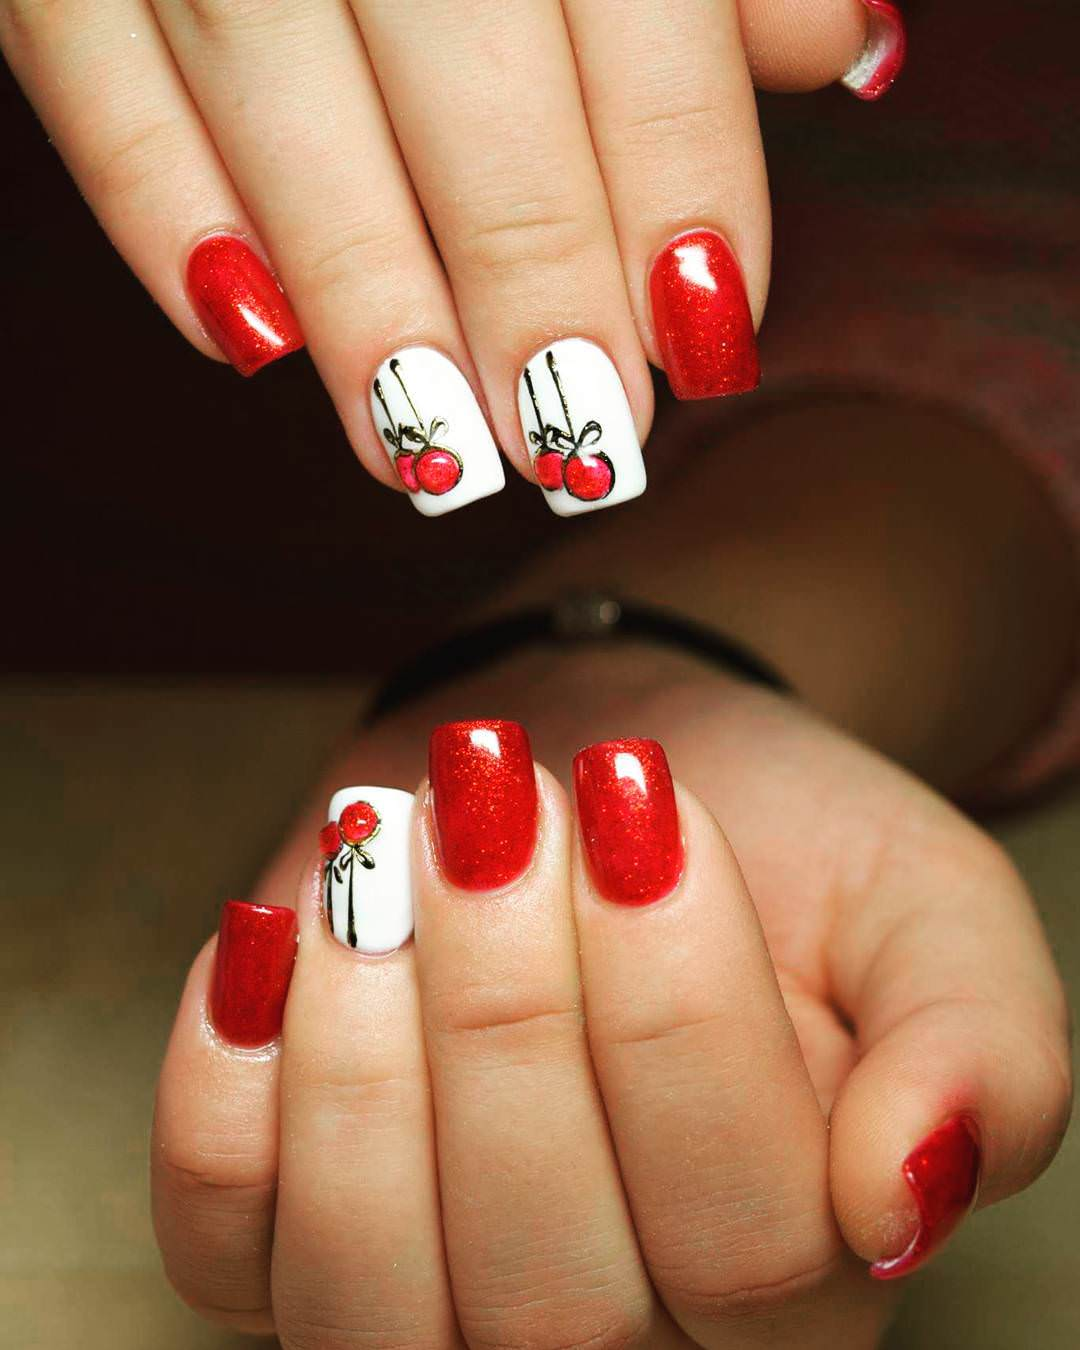 Christmas Nail Art Looks So Pretty